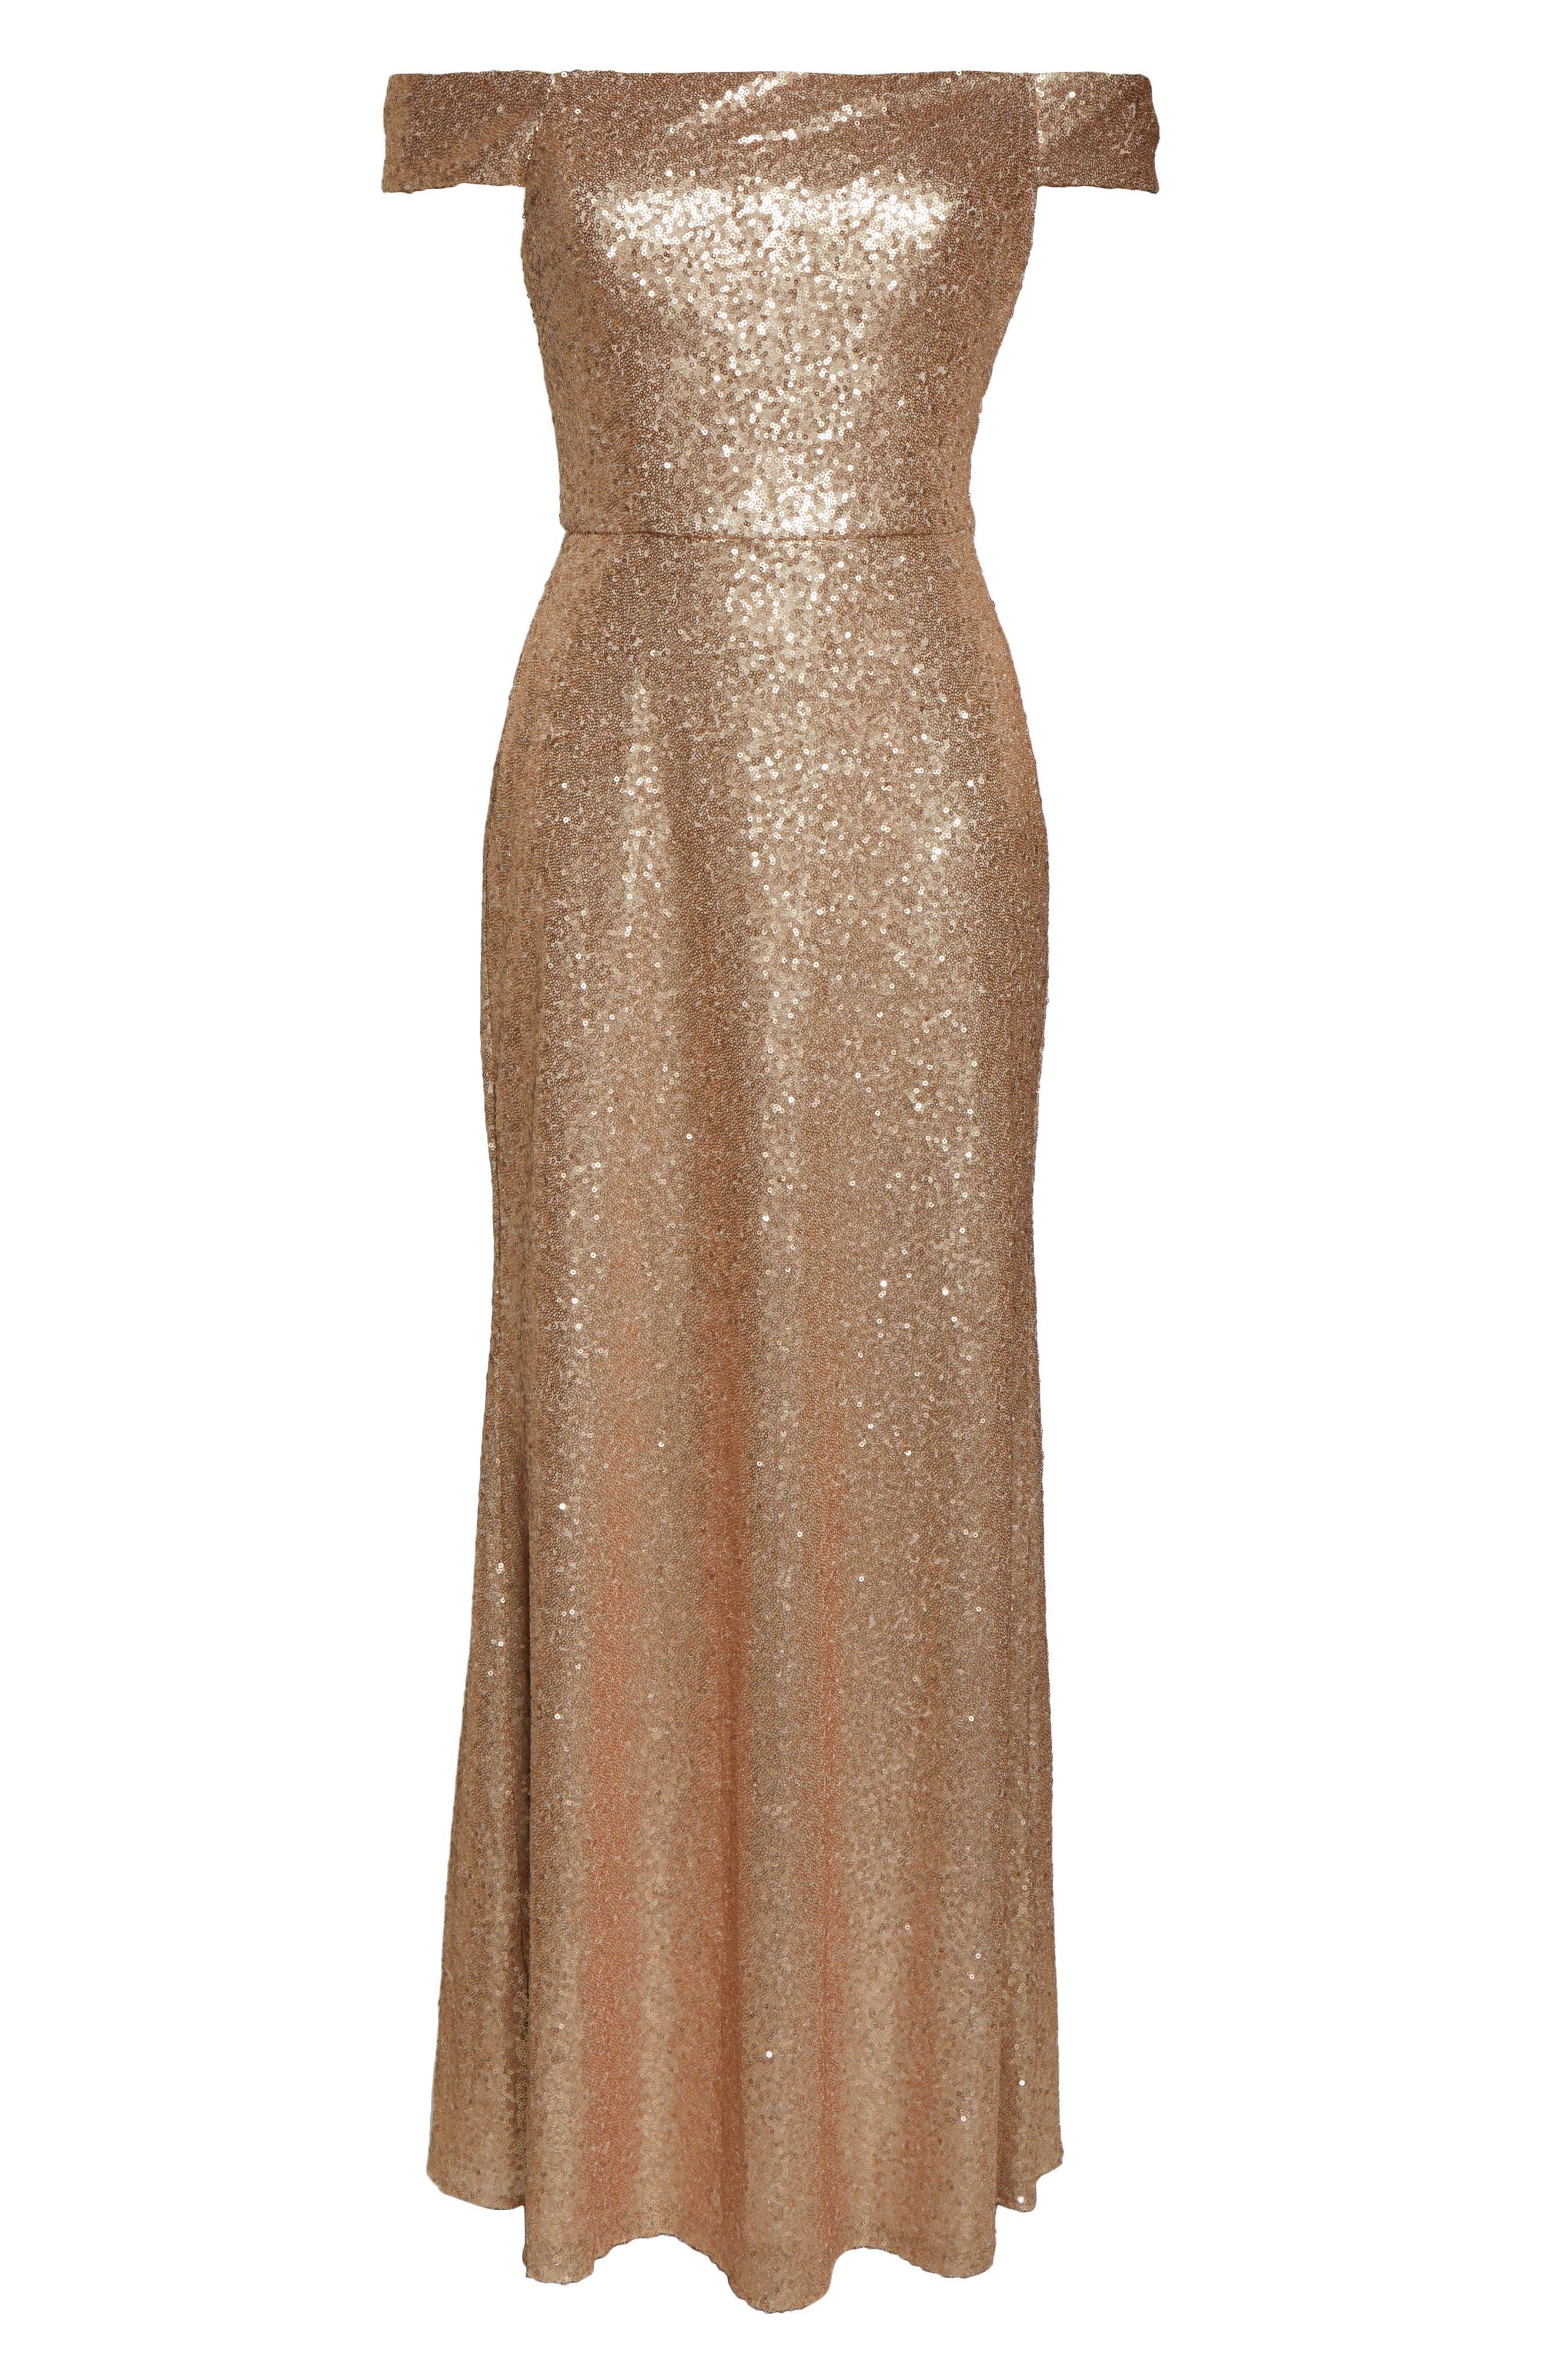 DESSY COLLECTION, Sequin Off the Shoulder Gown, Alternate thumbnail 3, color, ROSE GOLD